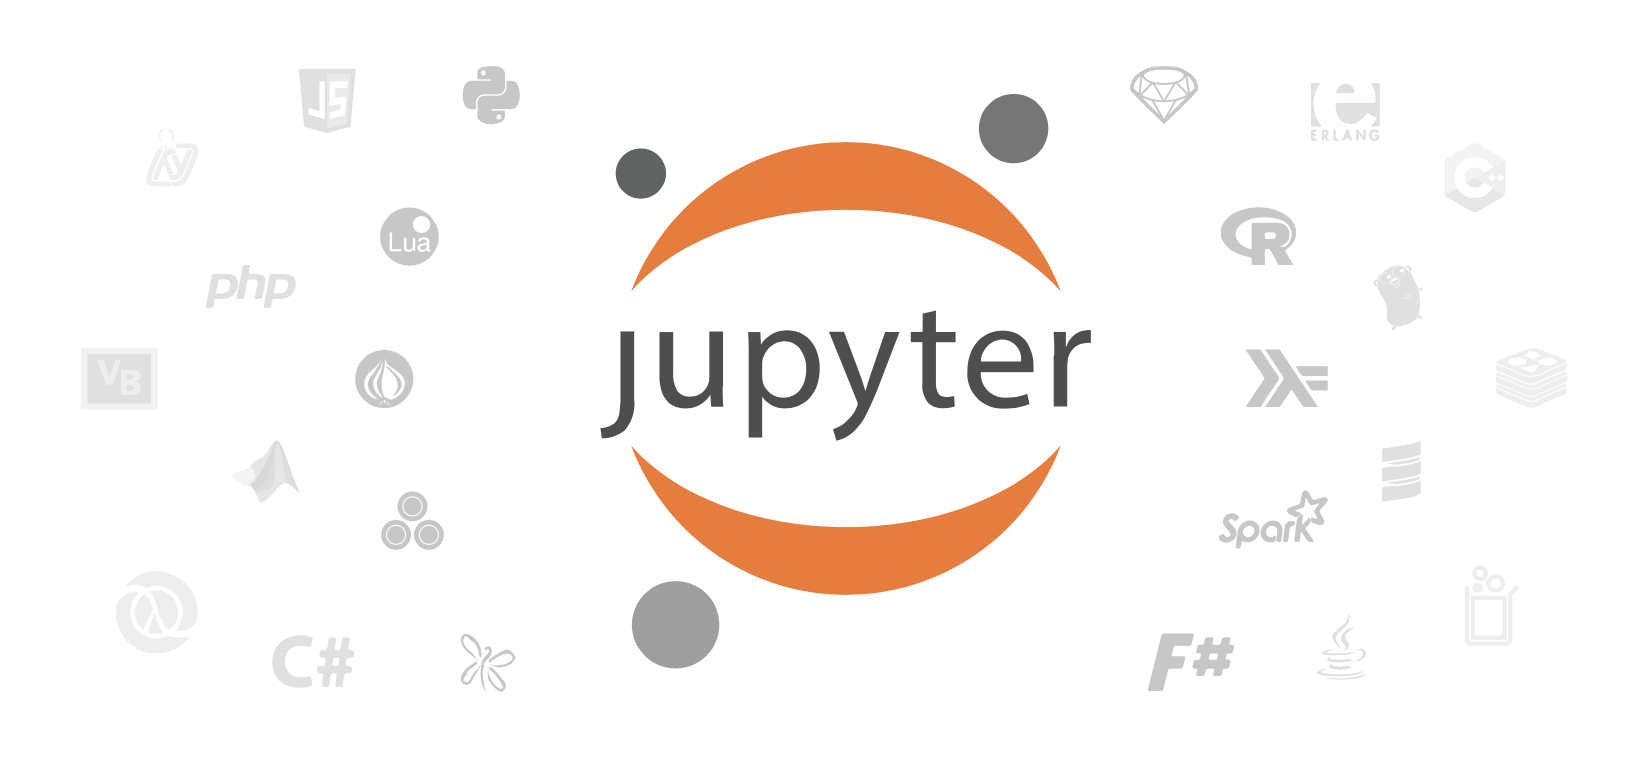 picoCTF - Insp3ct0r with Jupyter